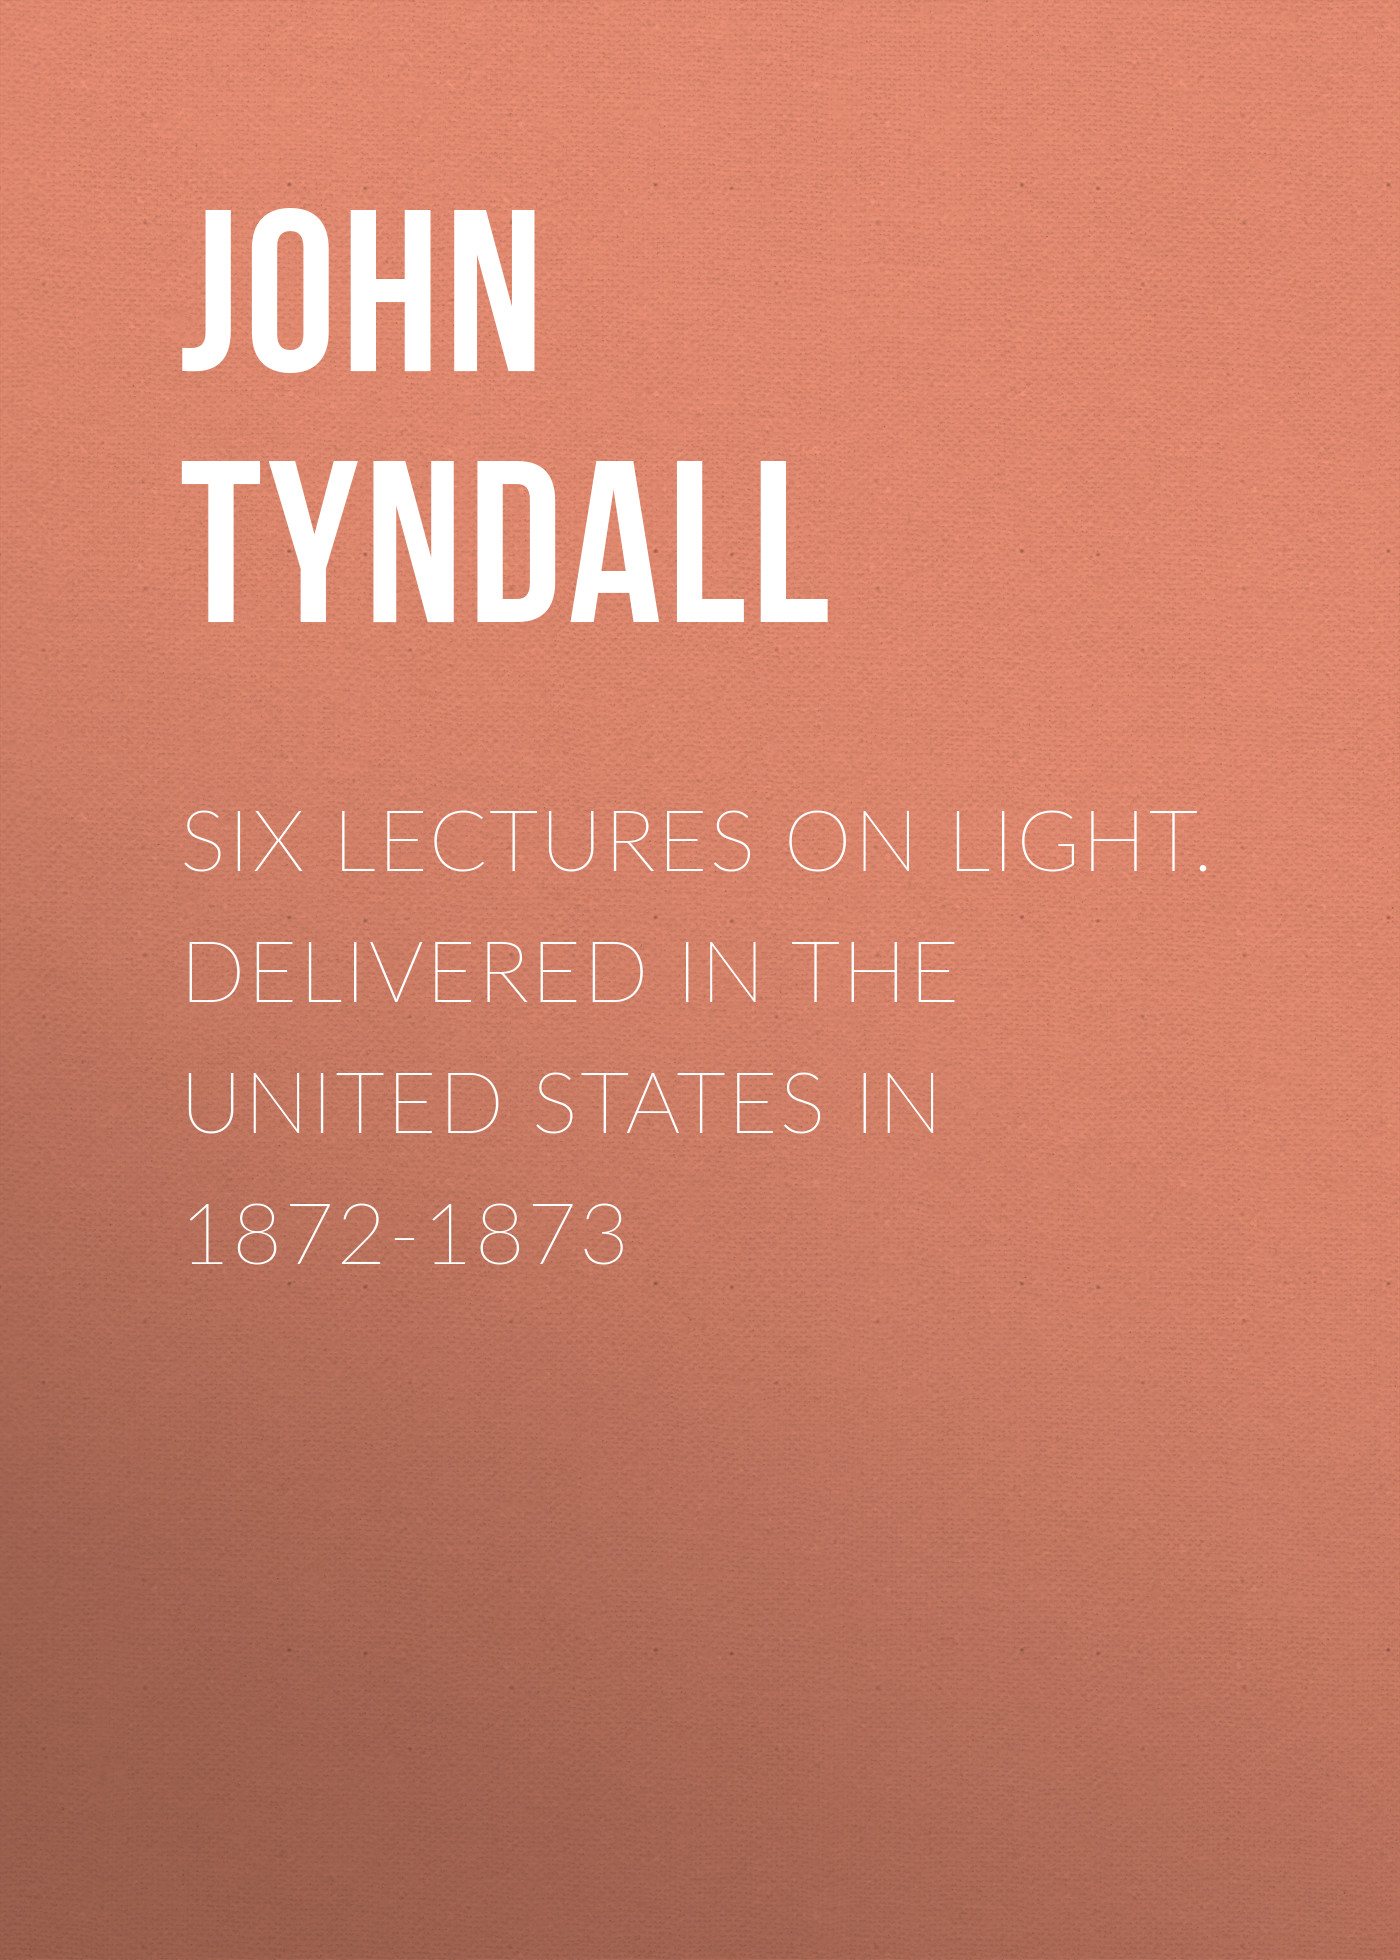 John Tyndall Six Lectures on Light. Delivered In The United States In 1872-1873 henry reuben rose good sense in religion eleven lectures